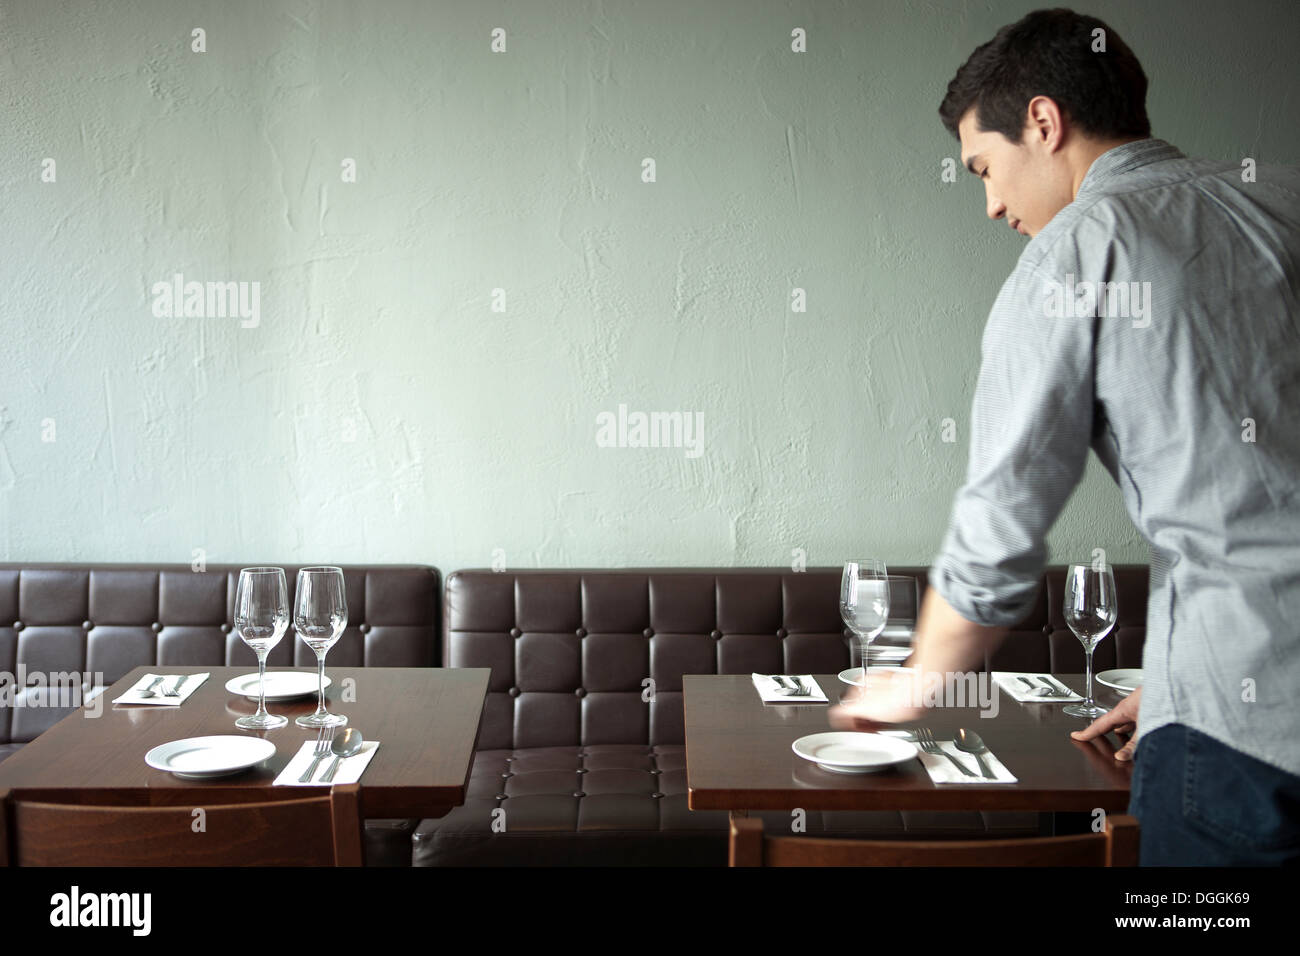 Waiter setting table in restaurant - Stock Image